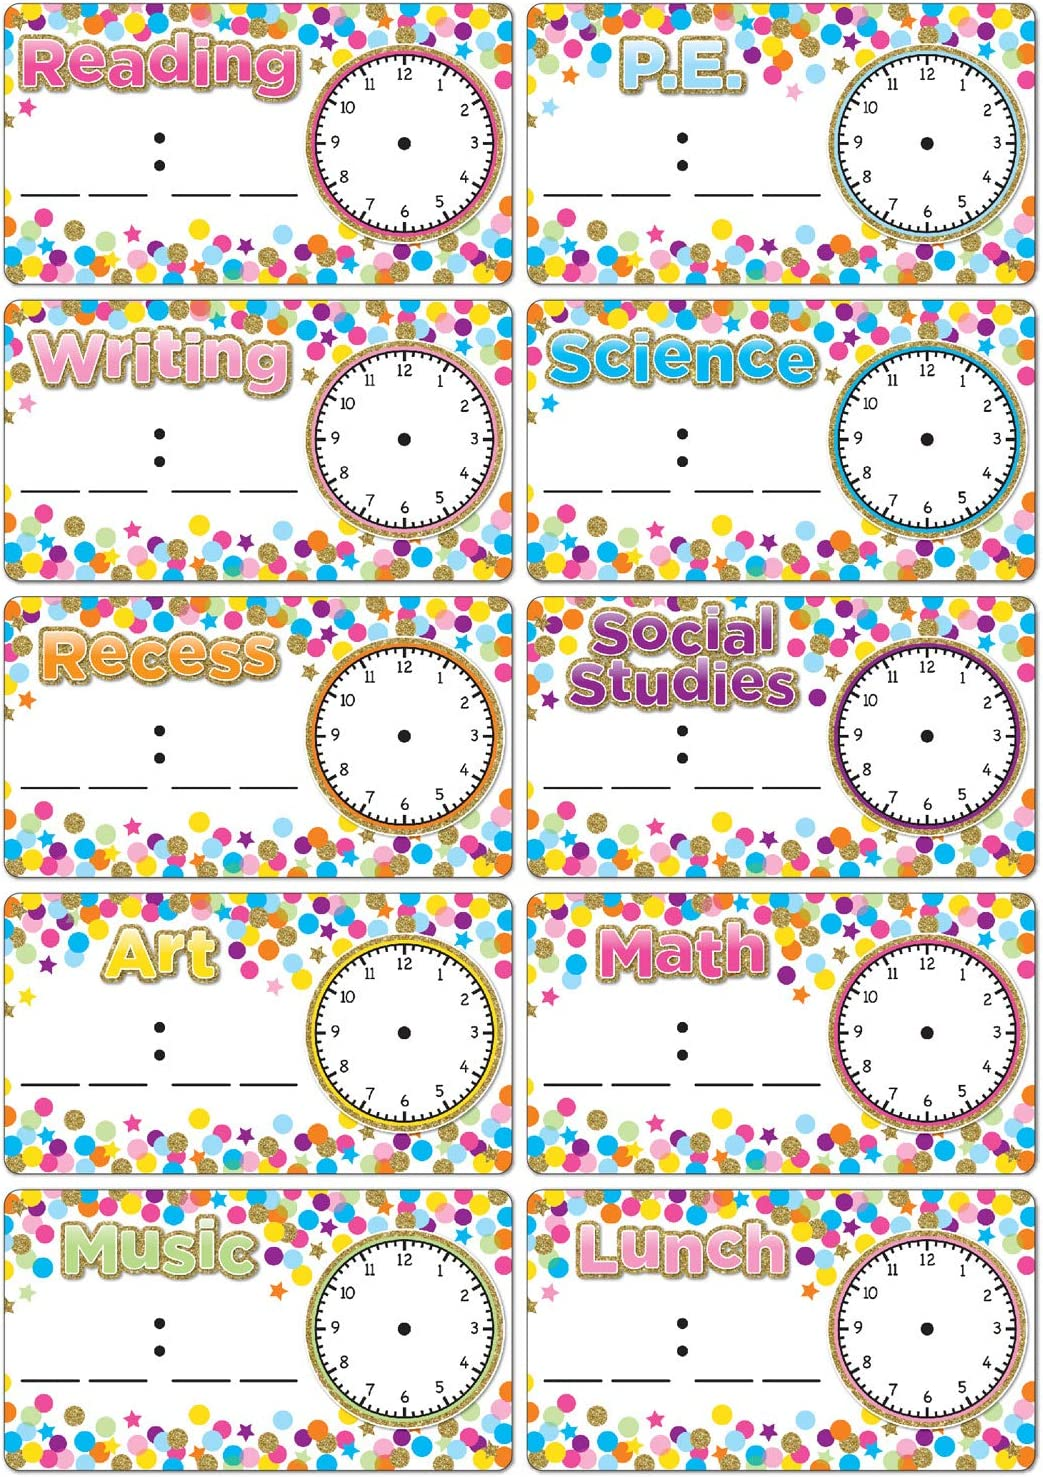 SALENEW very 5 ☆ popular popular Ashley Productions Die-Cut Magnets Schedule Confetti Cards